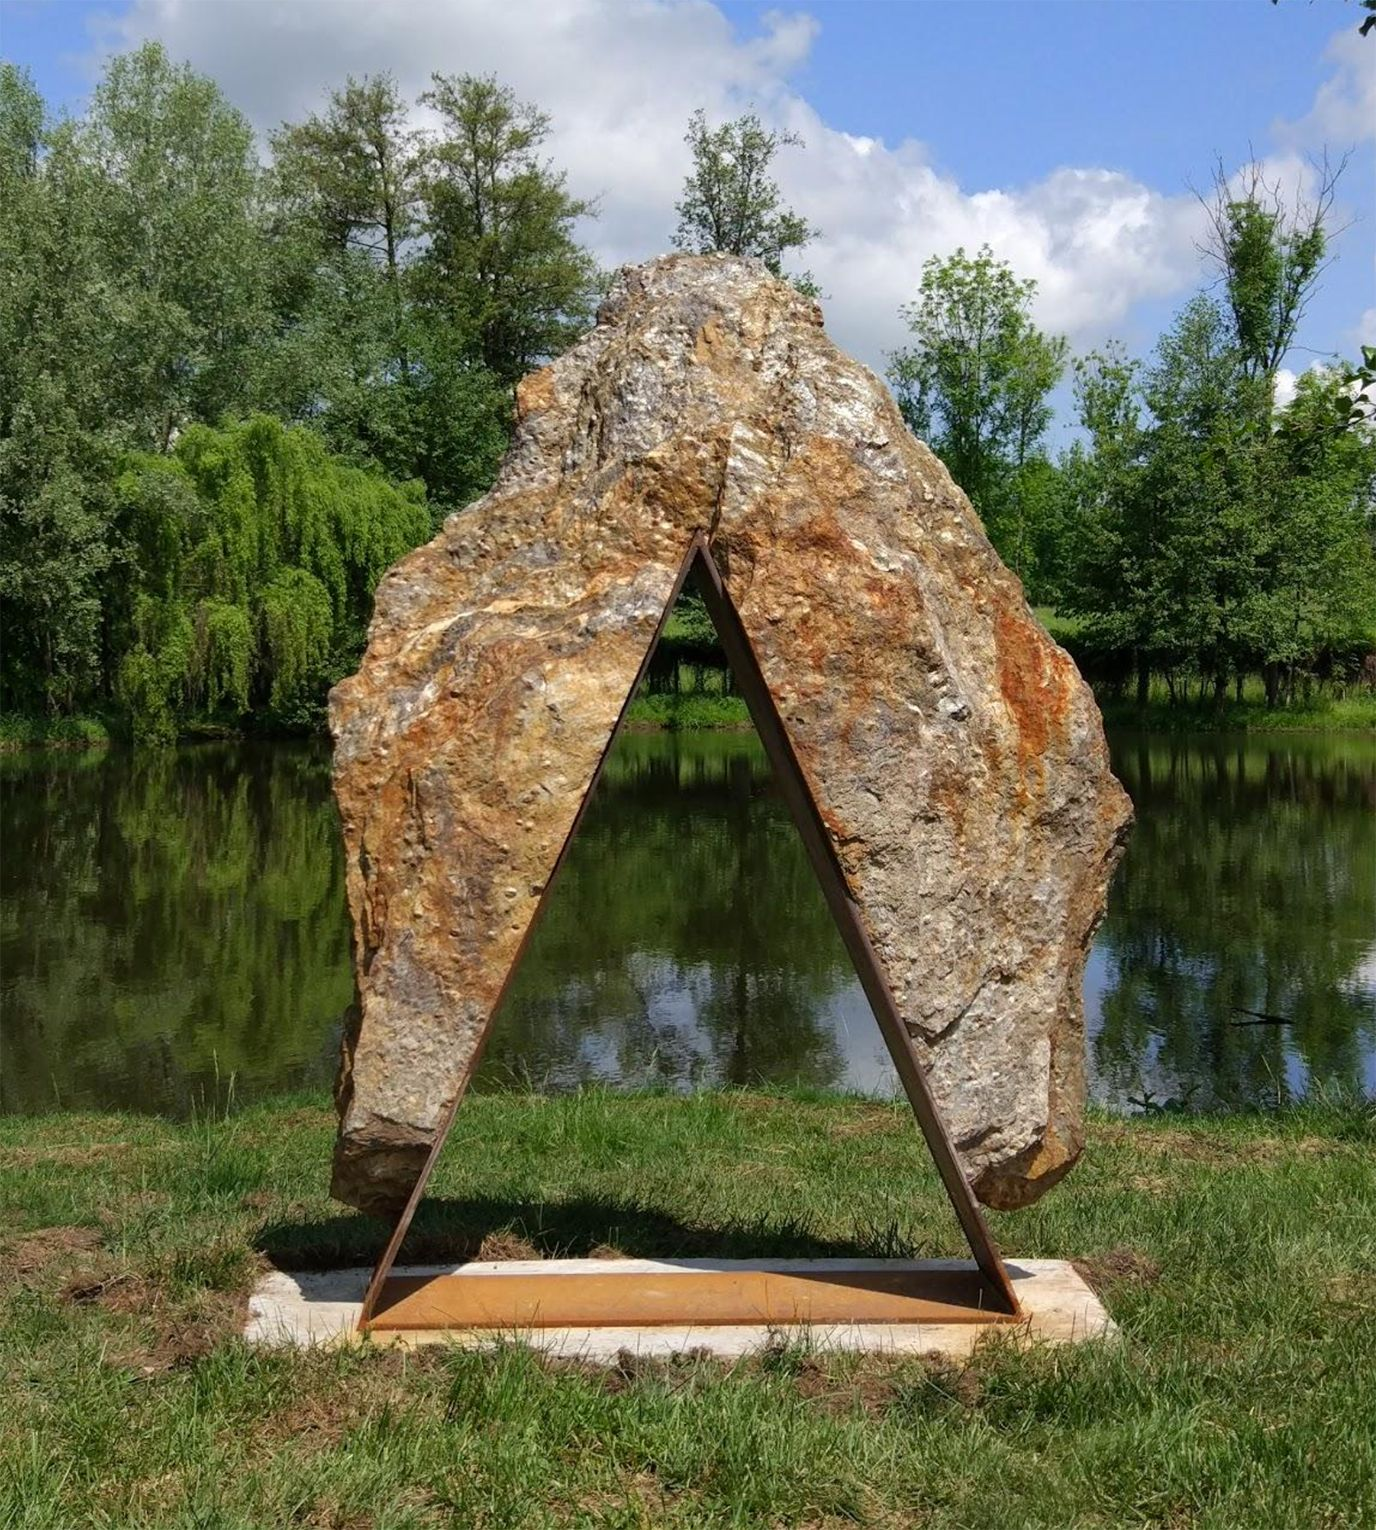 Untitled II, large-size sculpture